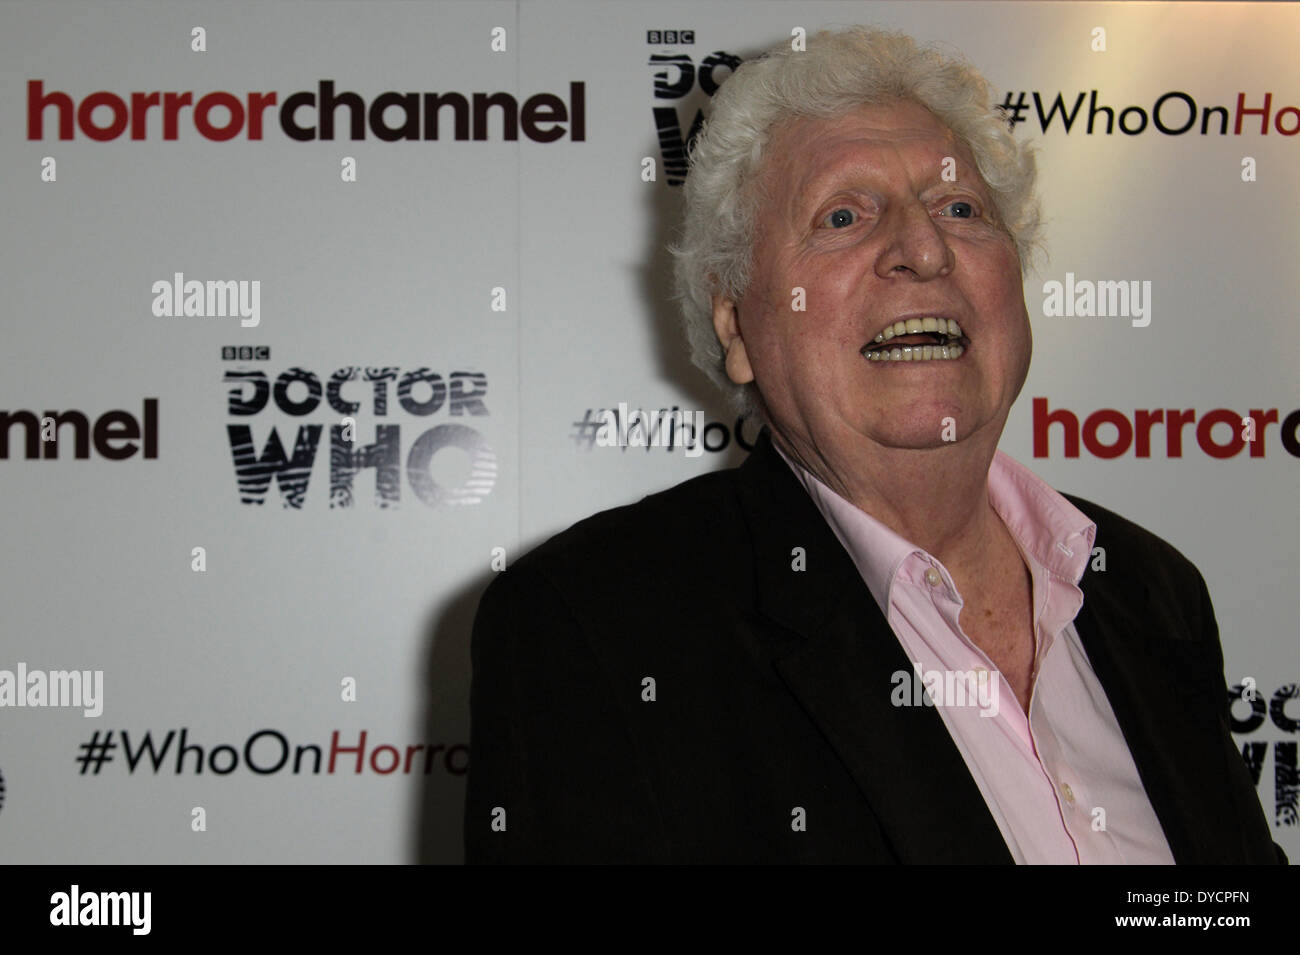 Tom Baker attends the launch for The Horror Channel season of Doctor Who on 14/04/2014 at The Ivy Club, London. The Horror Channel will broadcast 30 stories from the classic series which ran from 1963 to 1989  featuring the first seven Doctors, starting with Hartnell and concluding with Sylvester McCoy. Persons pictured: Tom Baker.  Picture by Julie Edwards - Stock Image